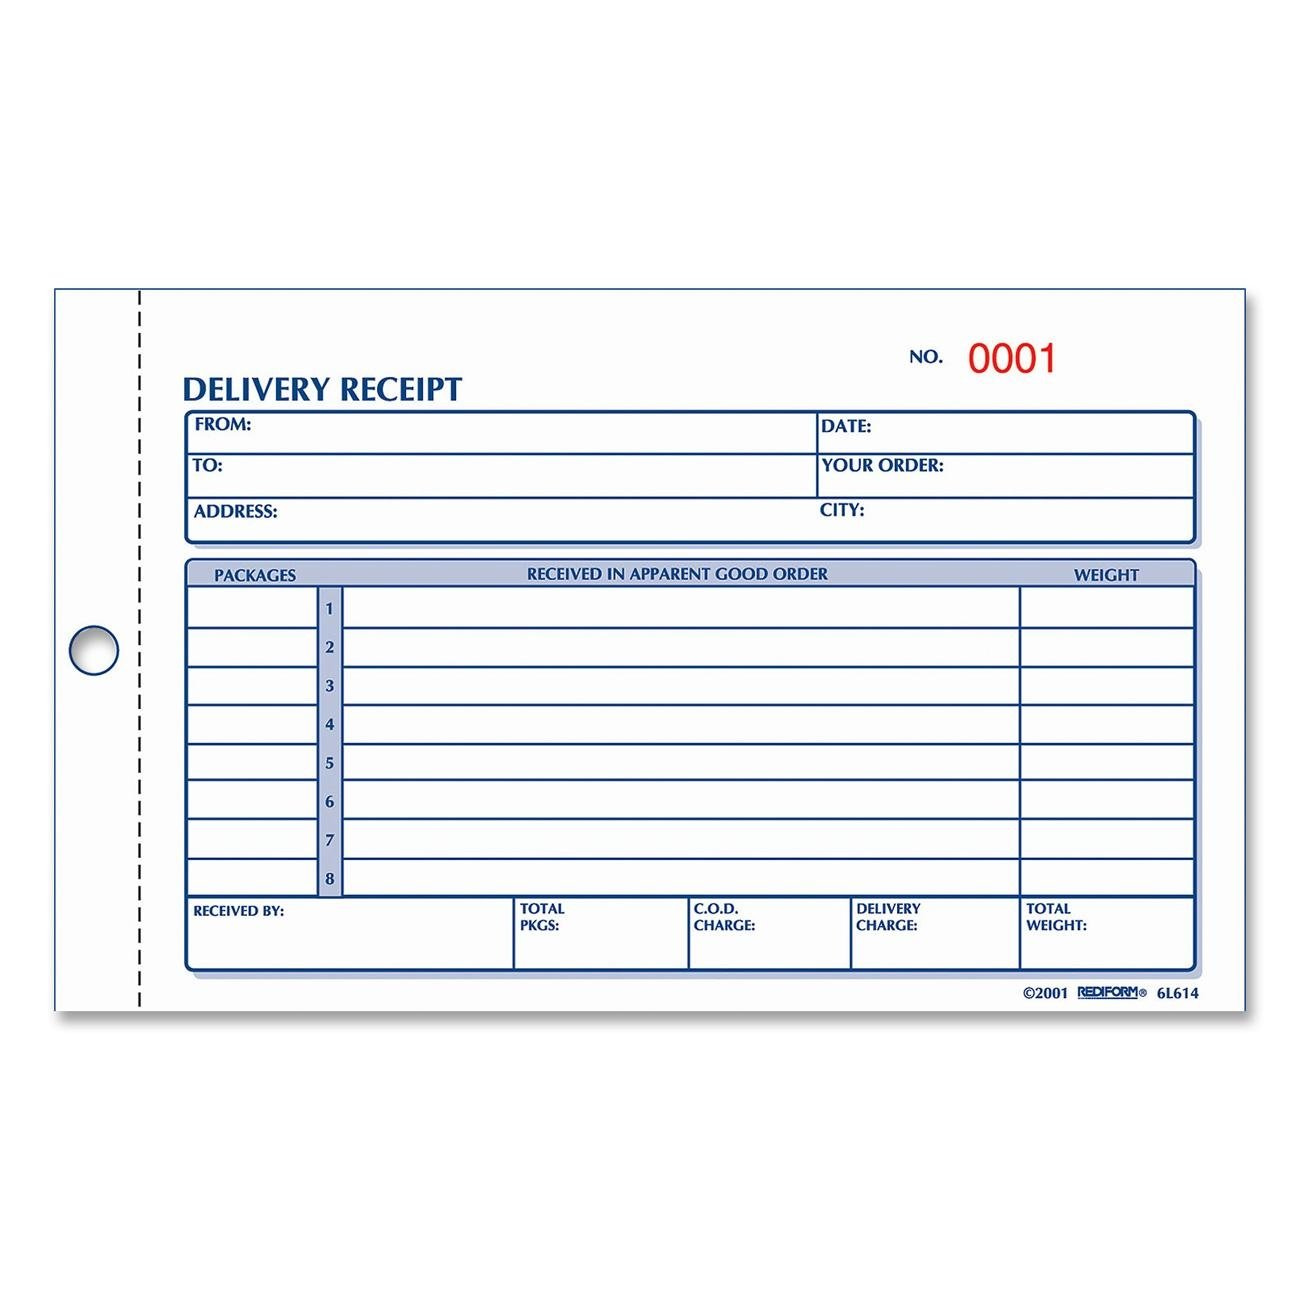 Exceptional Amazon.com : REDIFORM Delivery Receipt Book, Carbonless, 4.25 X 6.375 To Payment Receipt Book